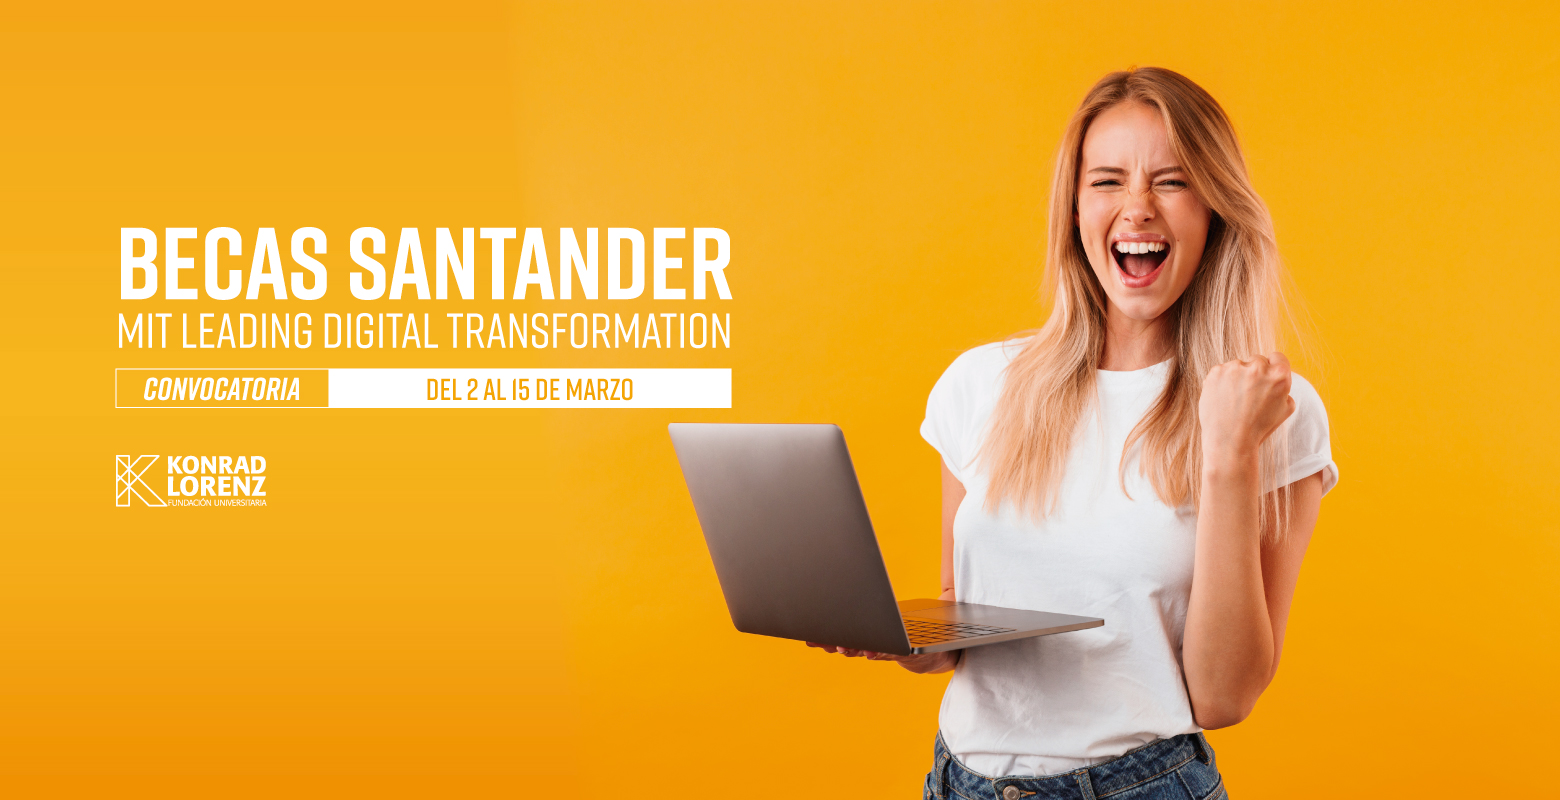 Becas Santander for MIT Leading Digital Transformation